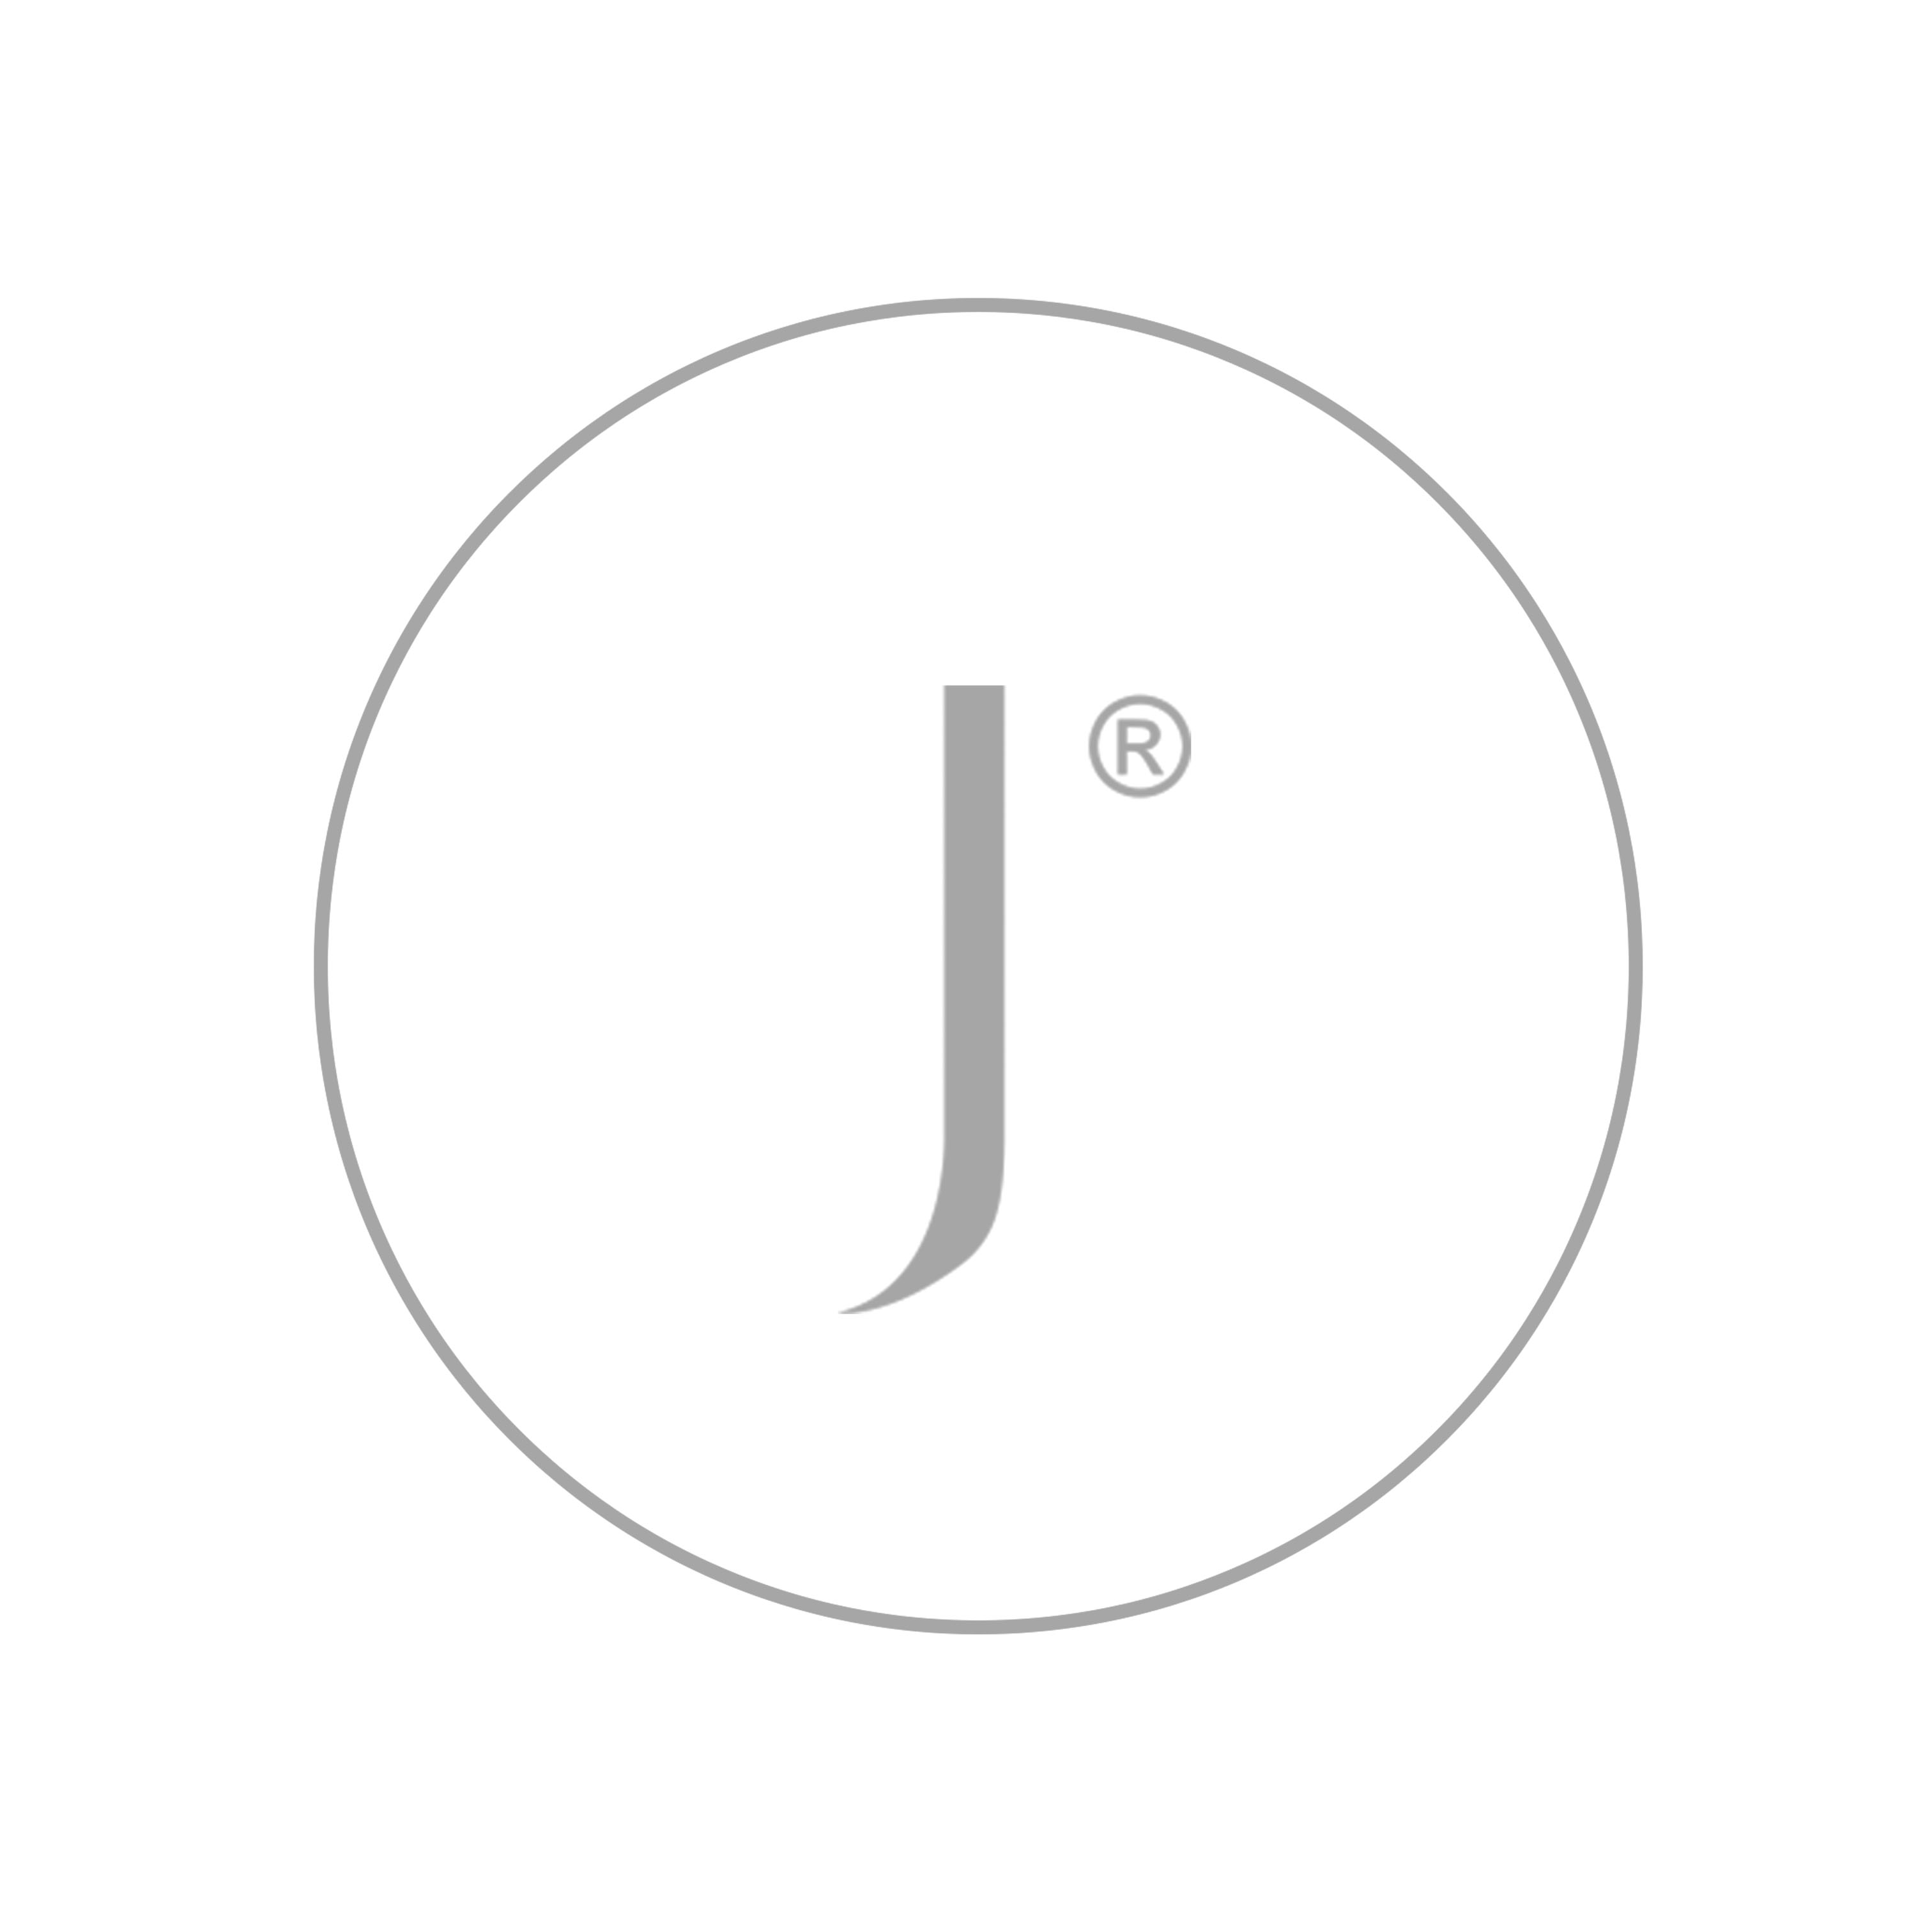 Beeswax Americano Cups Wine Clay 2 Piece Set